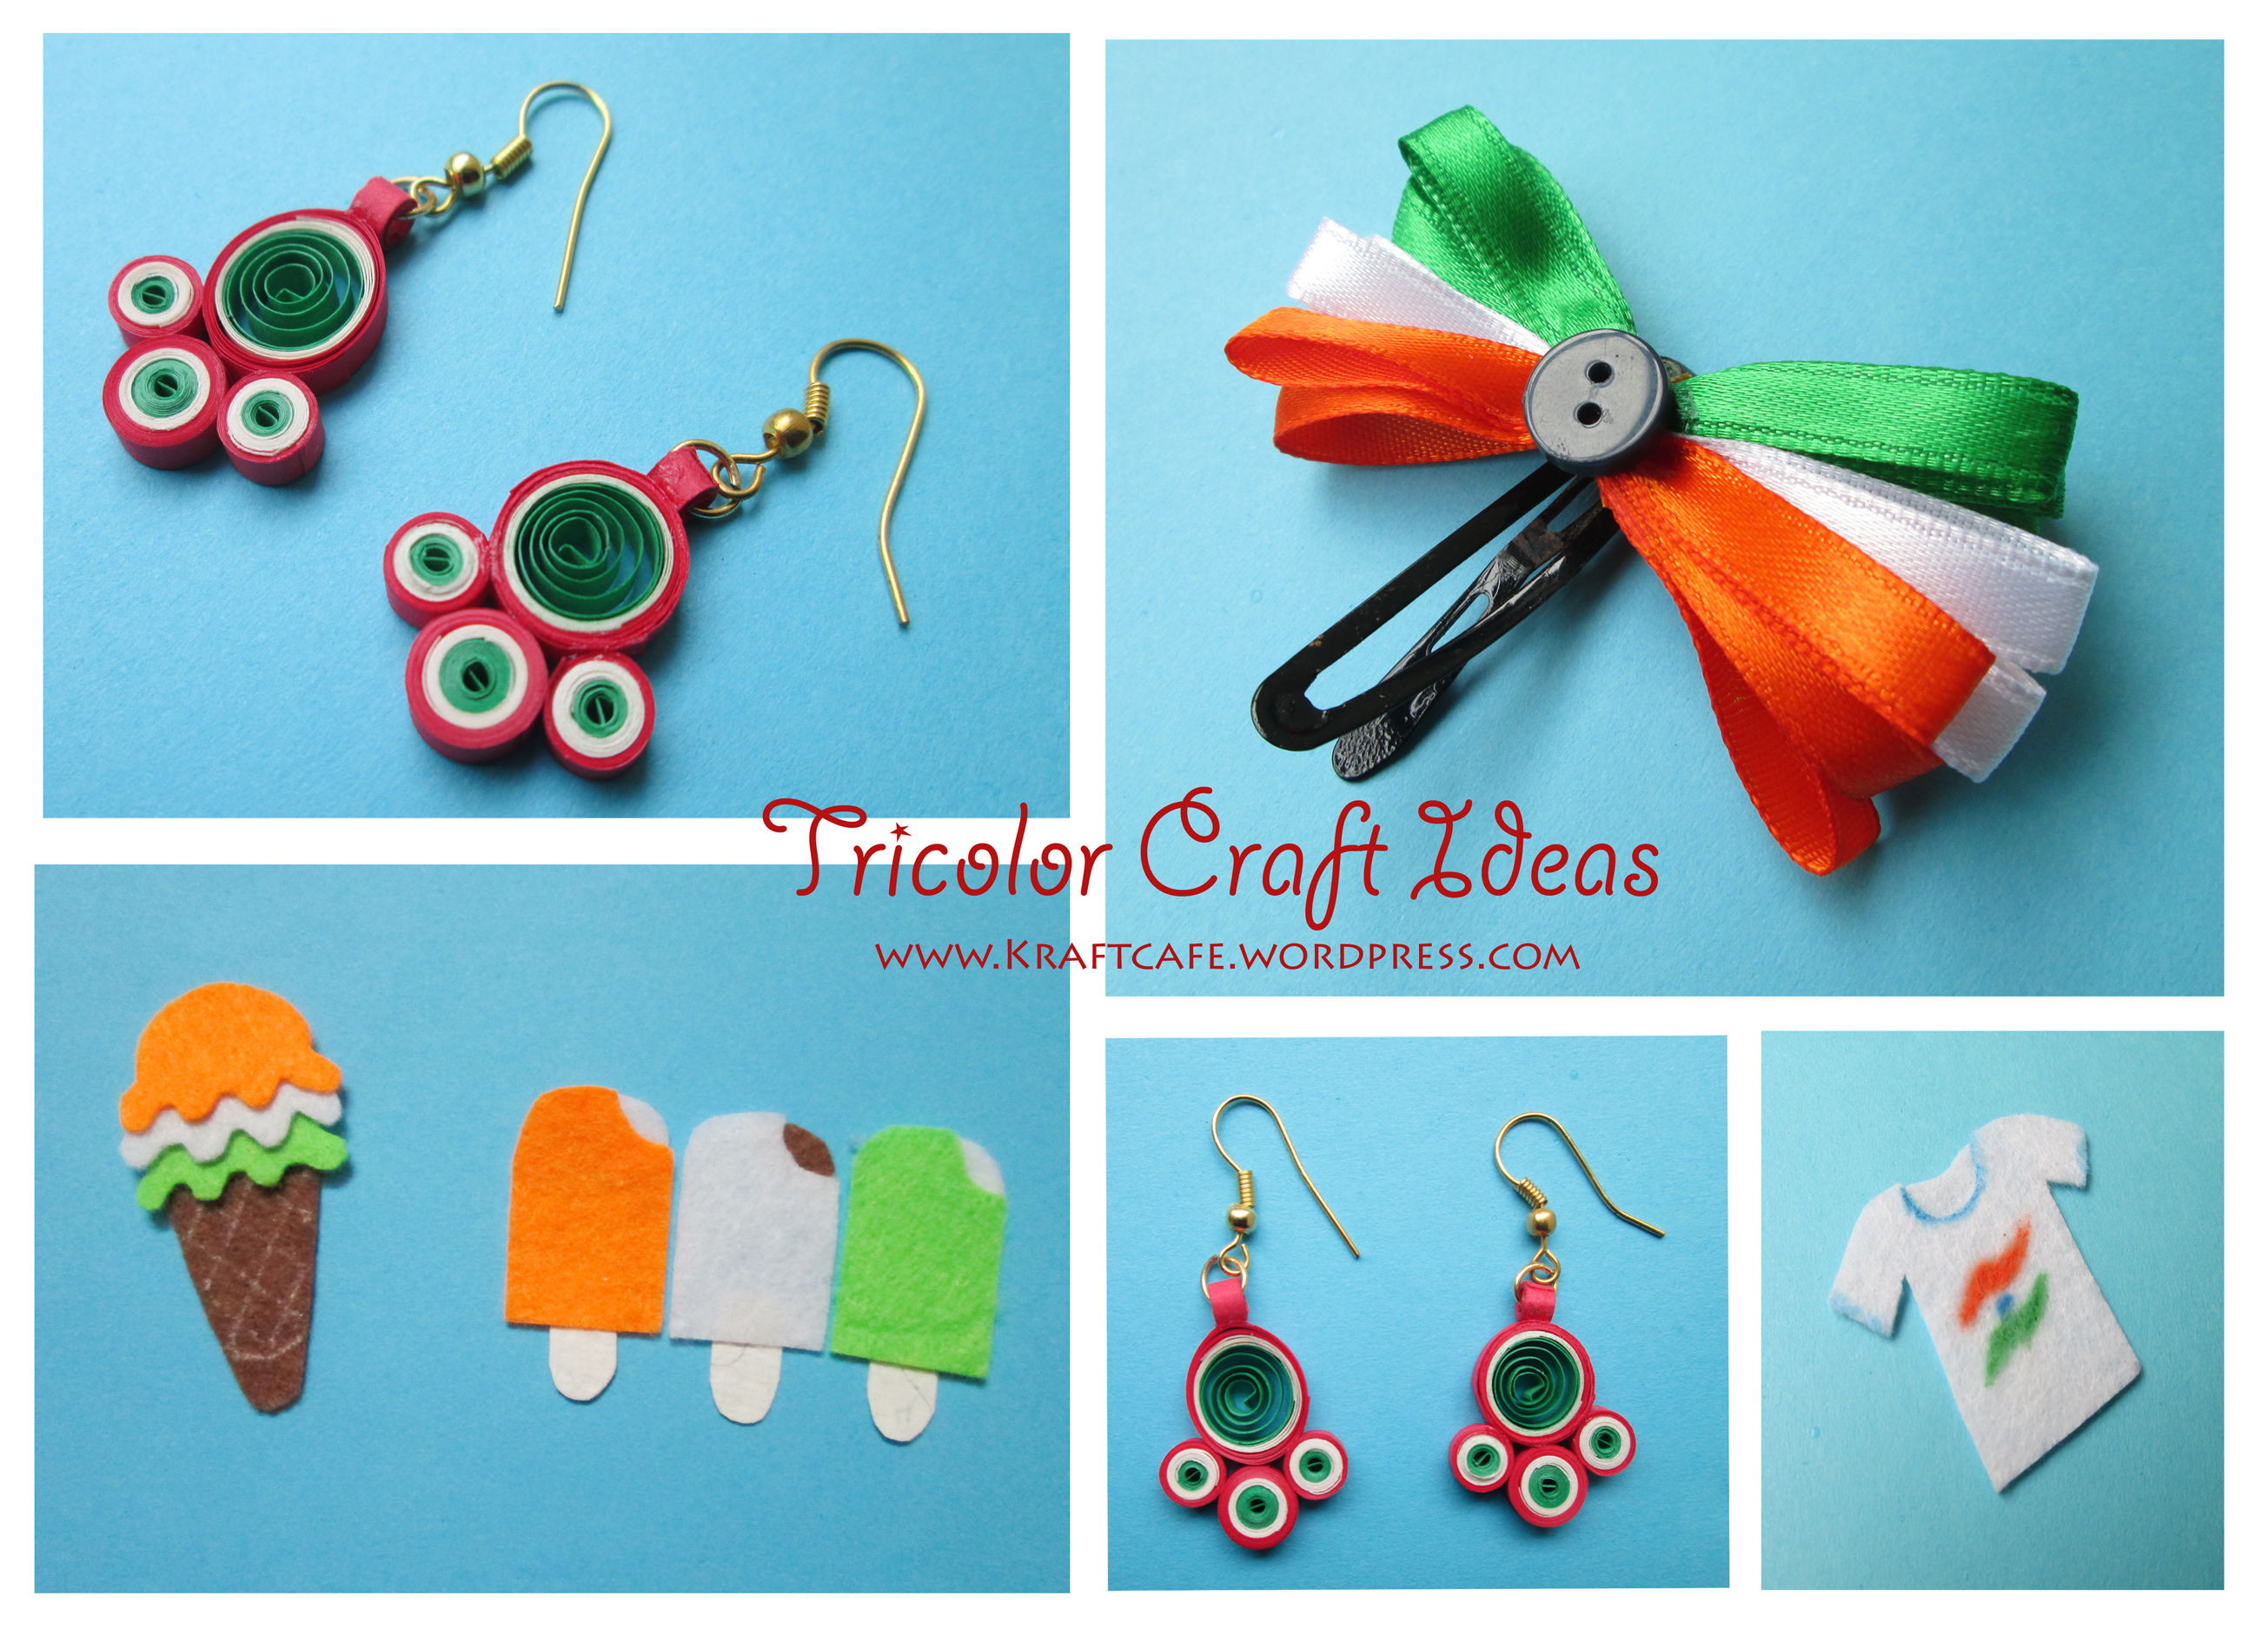 Tricolor Craft Ideasindependence Day Special Kraftcafe within craft ideas independence day regarding Invigorate